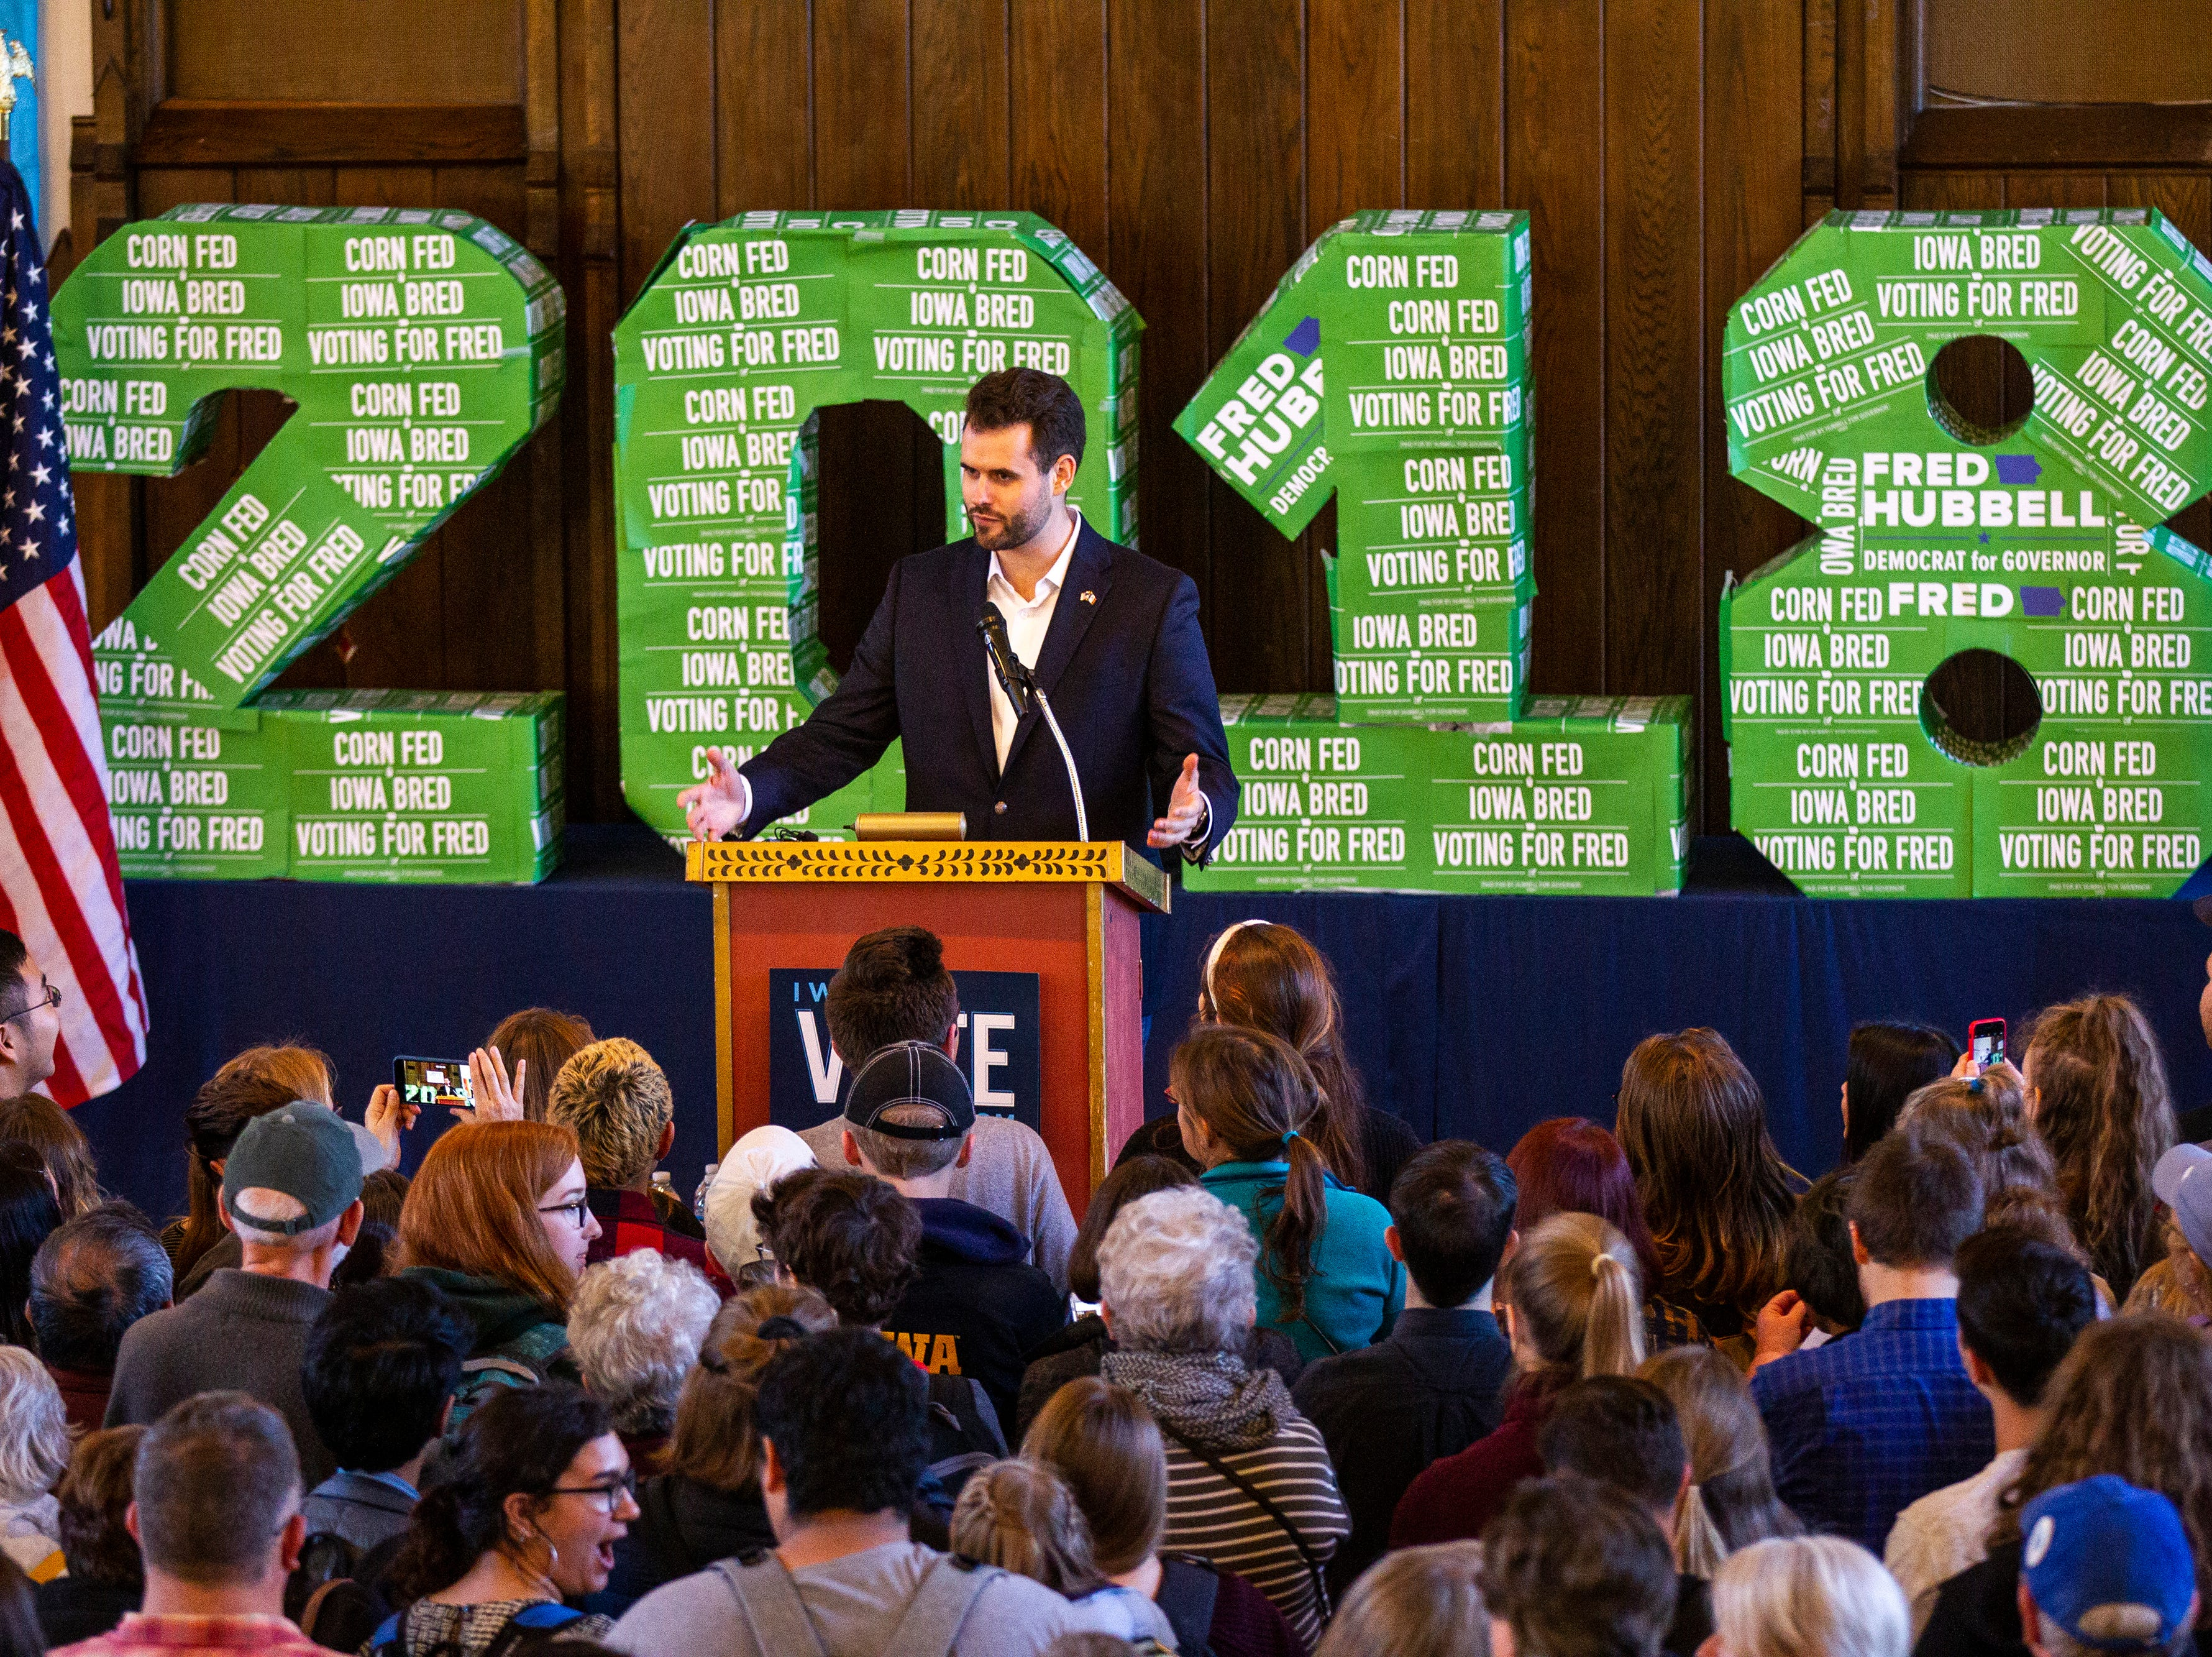 """Zach Wahls, Iowa Senate District 37 candidate, speaks during a """"All Hands on Deck"""" event on Tuesday, Oct. 23, 2018, at Old Brick in Iowa City."""